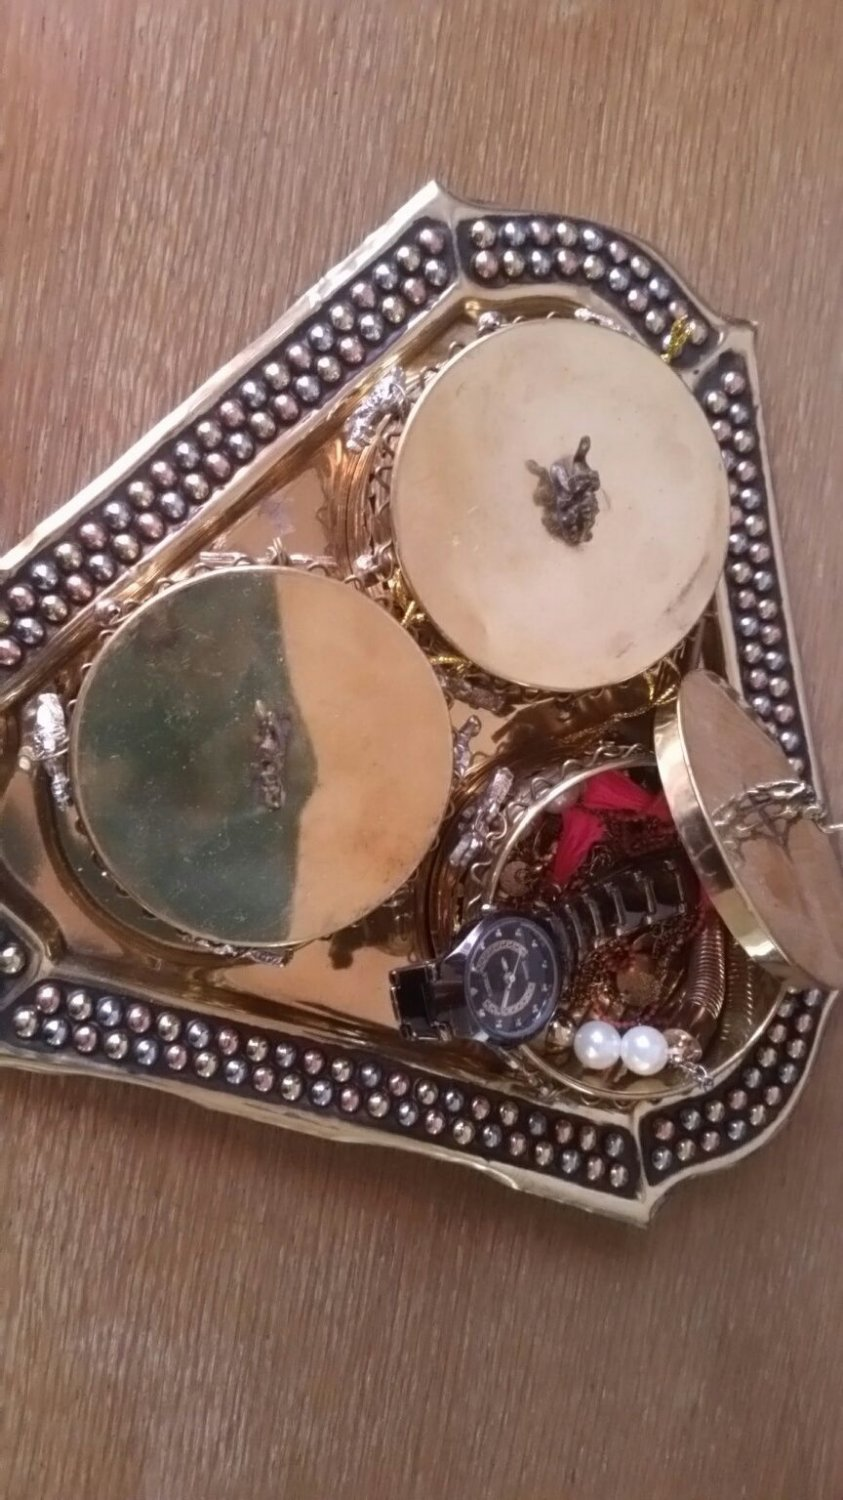 Brass jewelry box / 3 small boxes in a brass tray / new